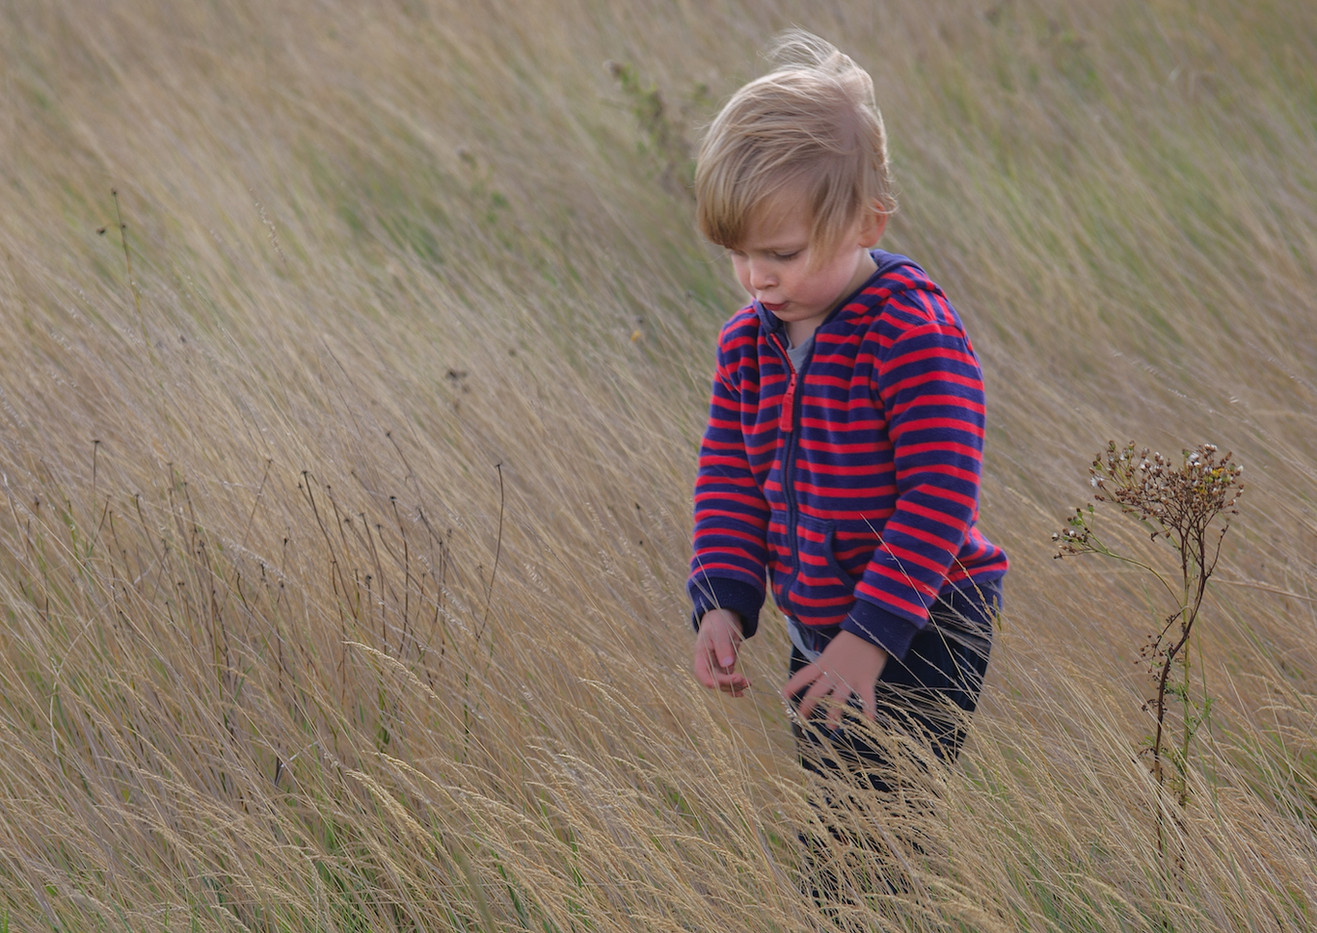 20 PLAYING IN THE GRASS by John Lewis